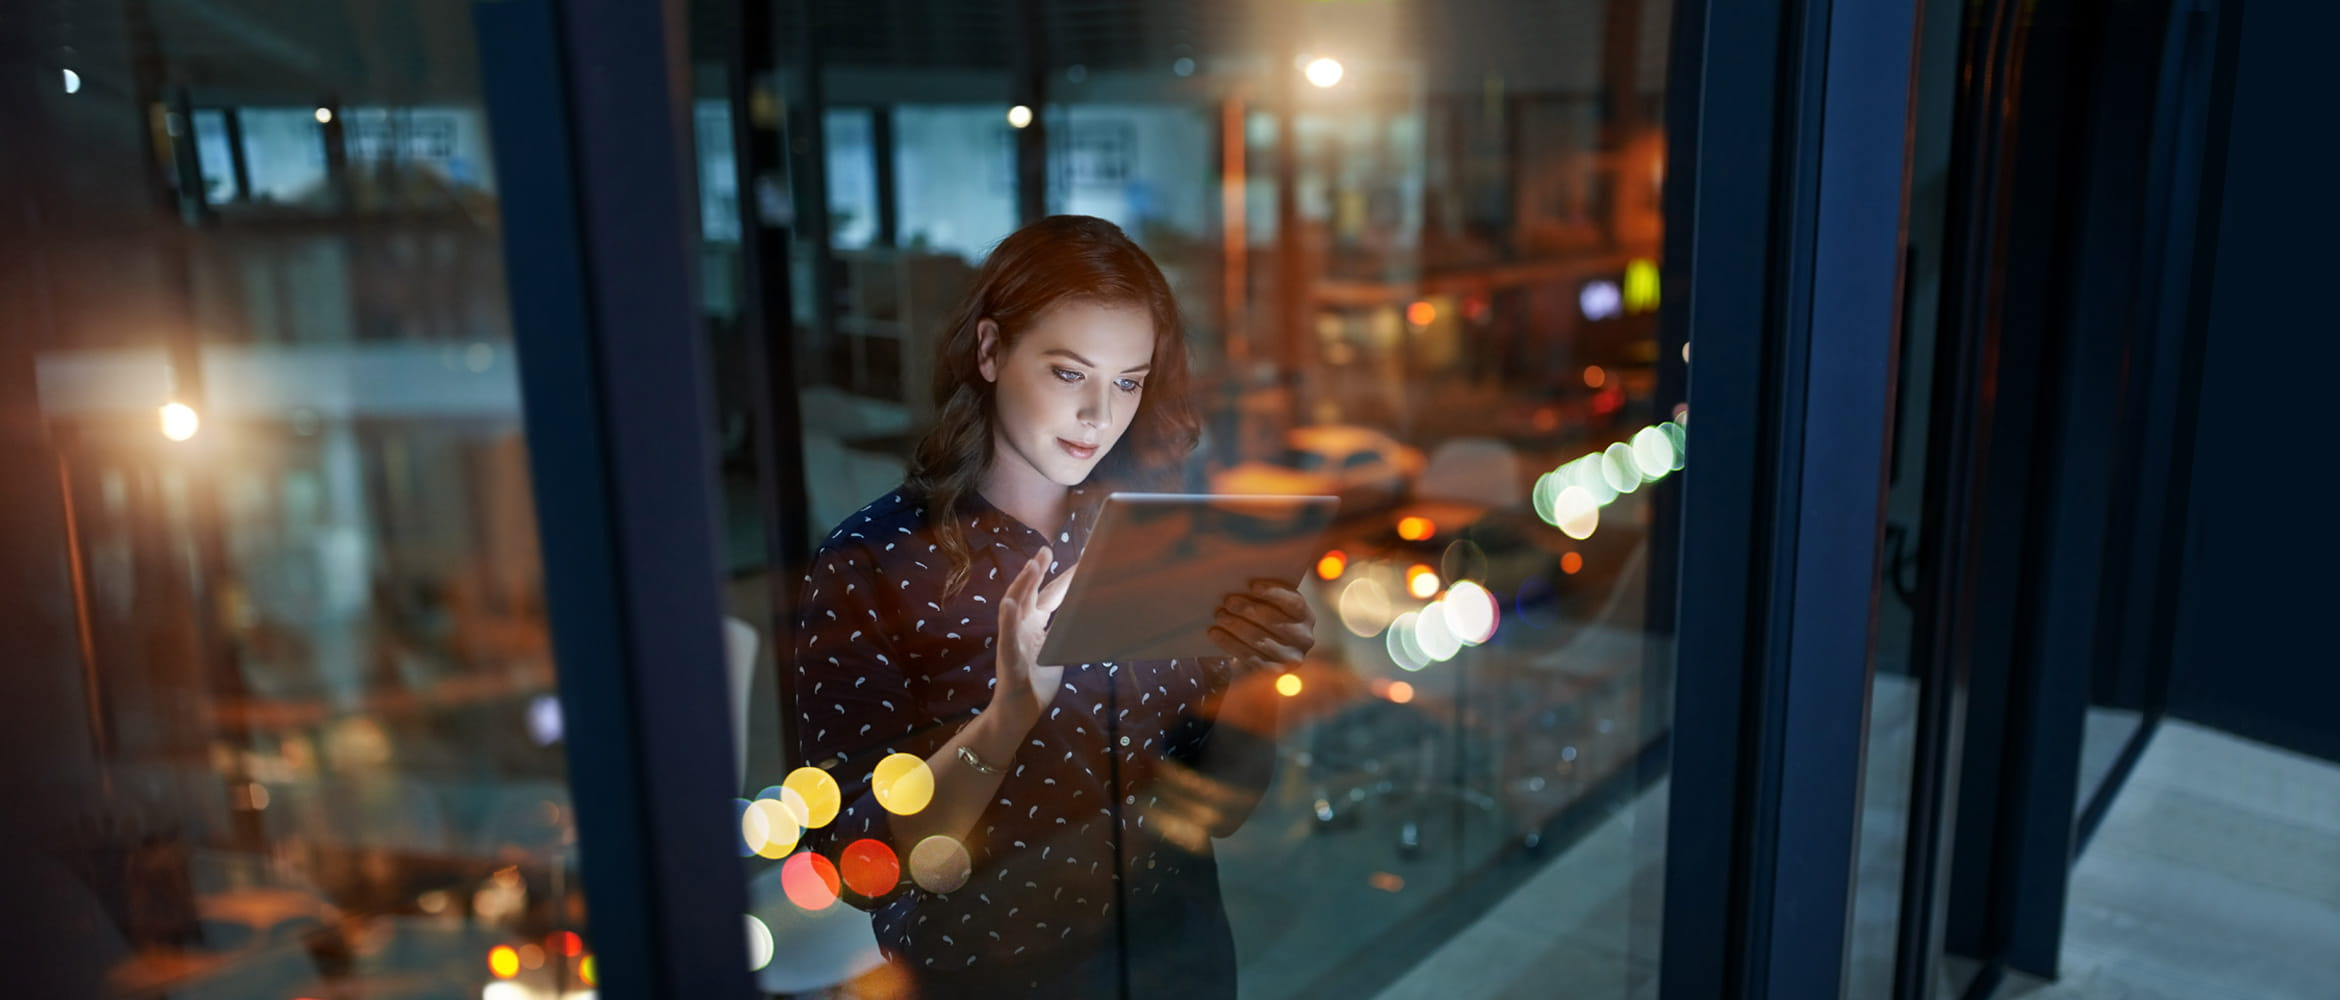 A female office employee is working late in the workplace of the future. She is reviewing a document on her tablet computer while standing next to a window overlooking the city at night.